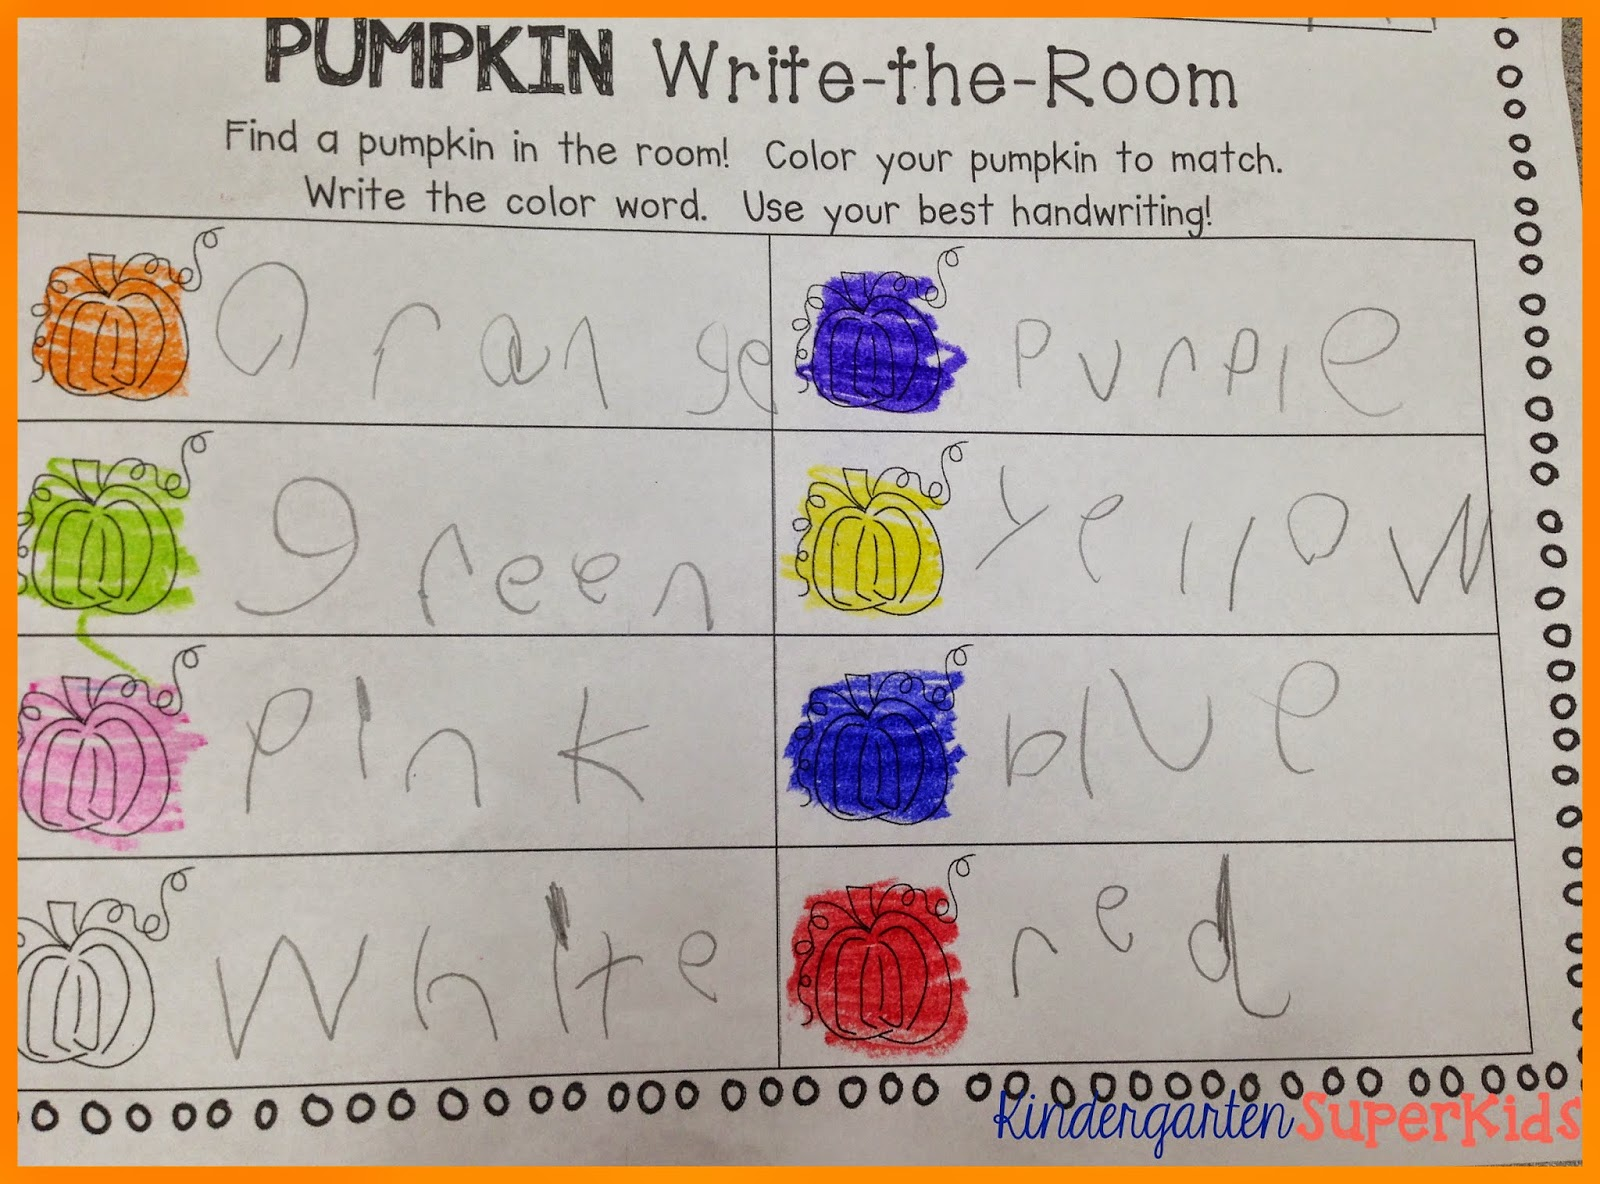 http://www.teacherspayteachers.com/Product/Pumpkin-Color-Words-Write-the-Room-1510380